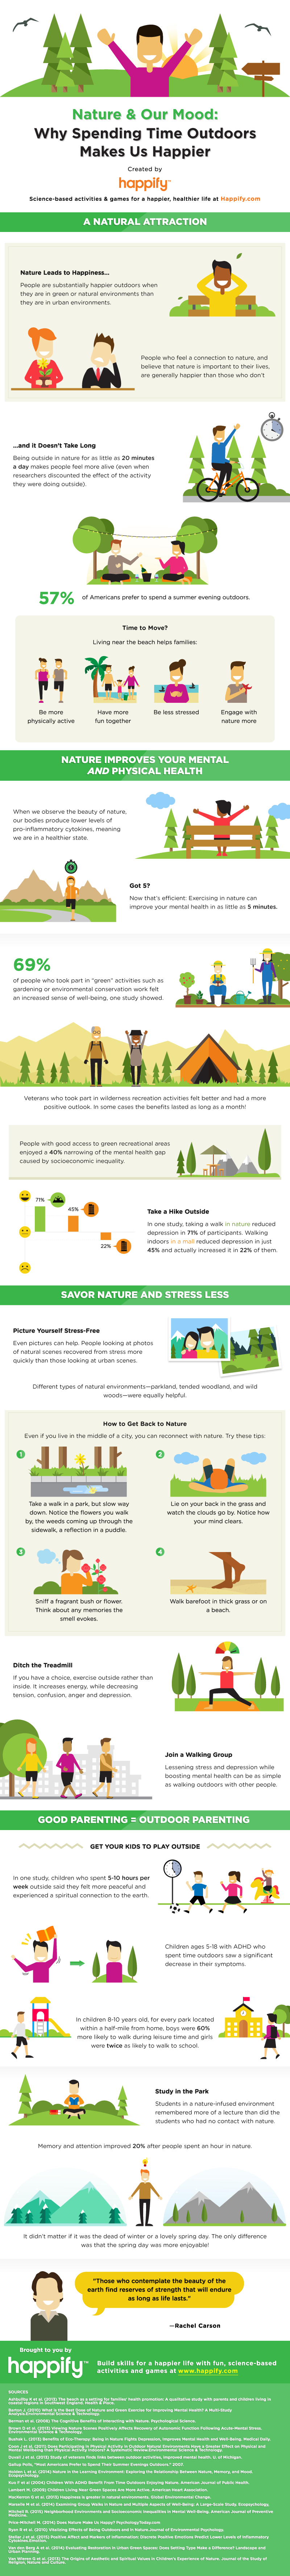 Happify Why Being in Nature Makes You Happier